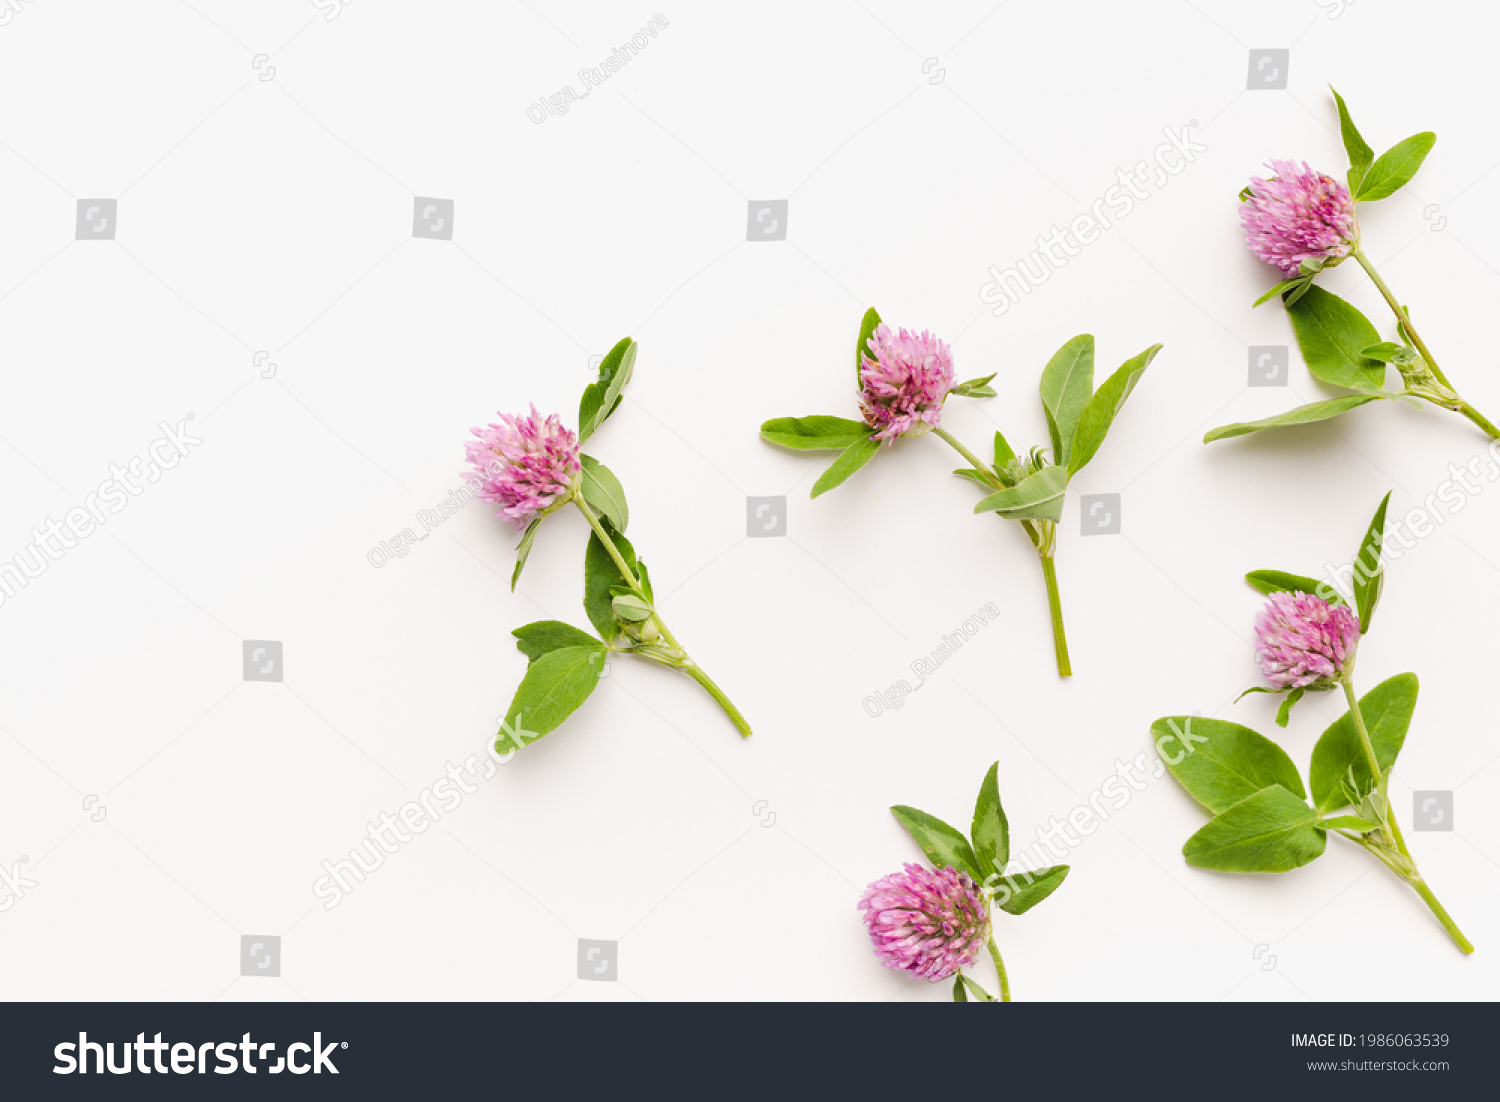 clover flowers on white background, wild clover, blooming clover  #1986063539